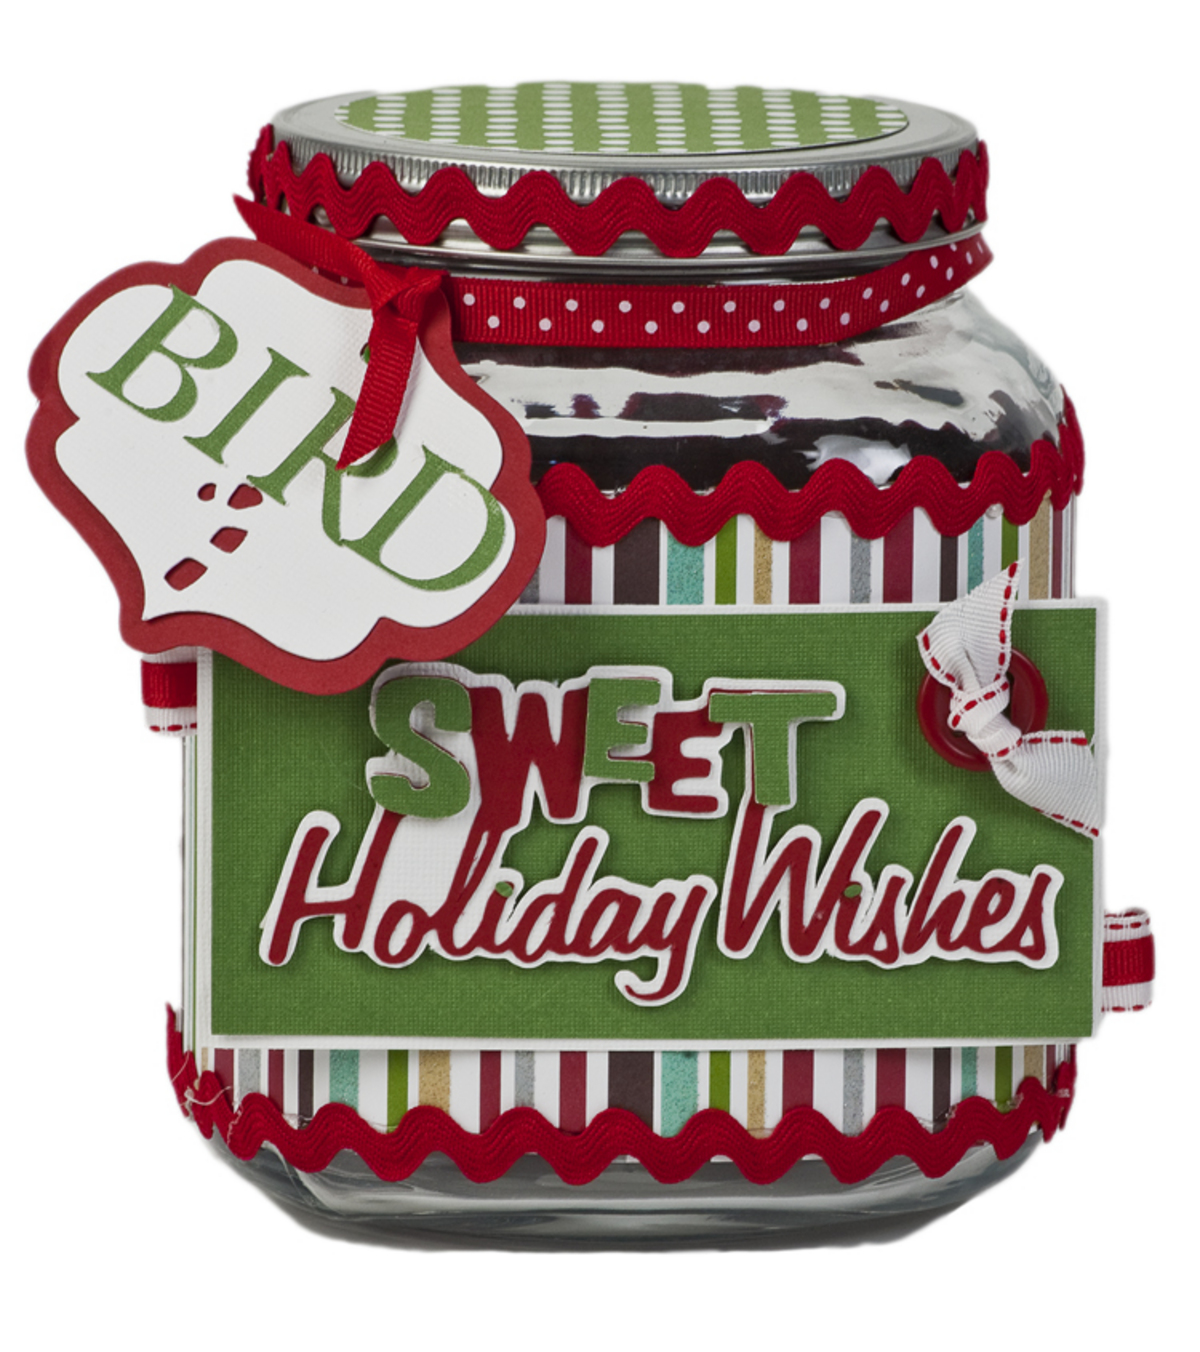 Sweet Holiday Wishes Jar